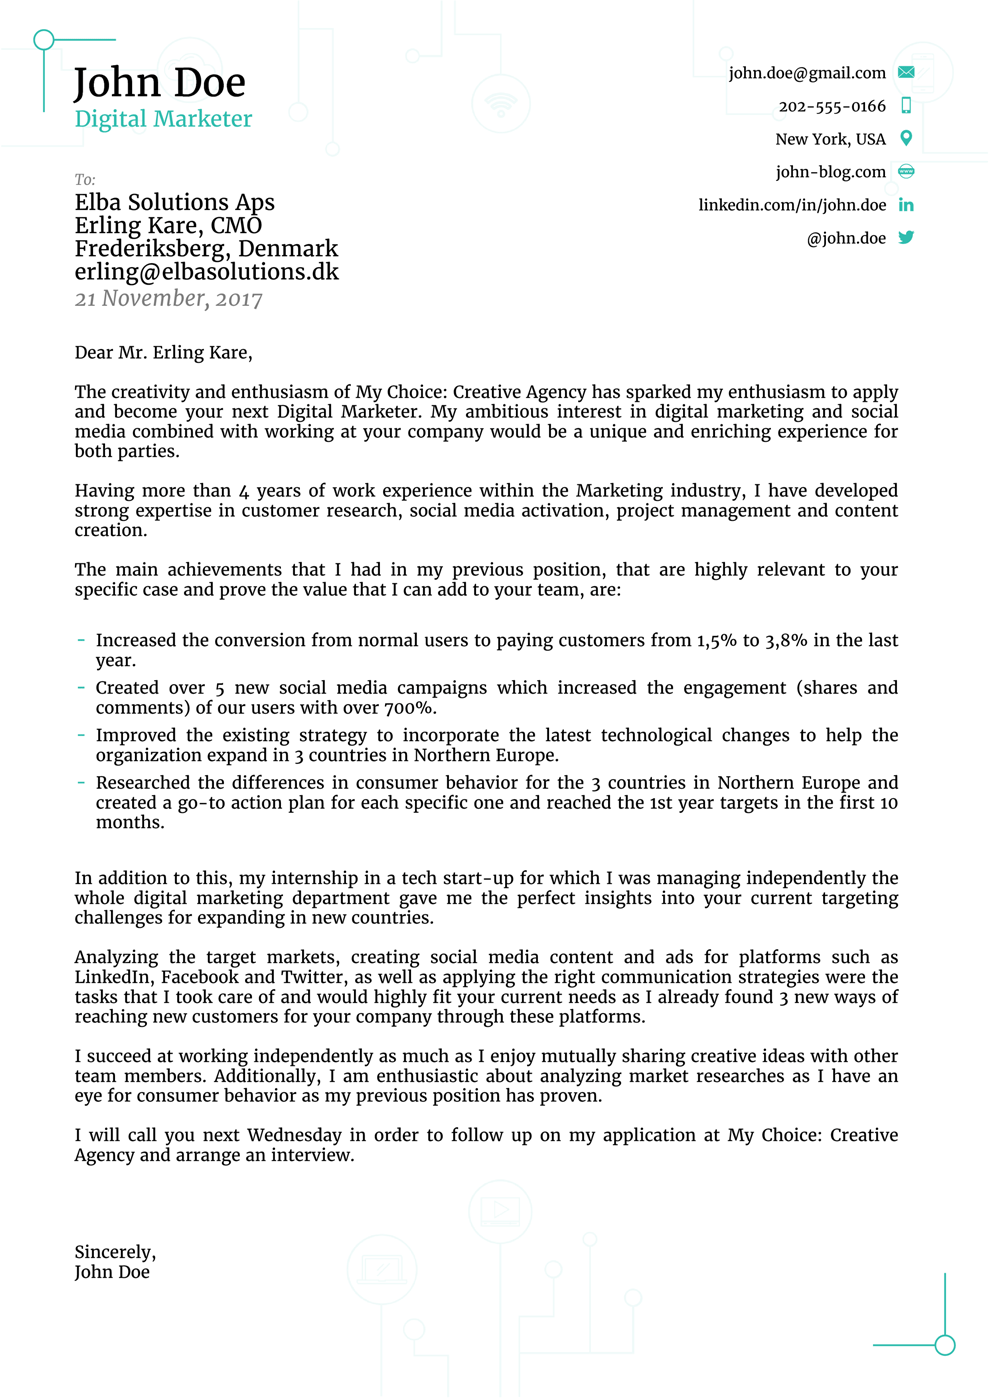 Wonderful Modern Cover Letter Template For Professional Cover Letter Template